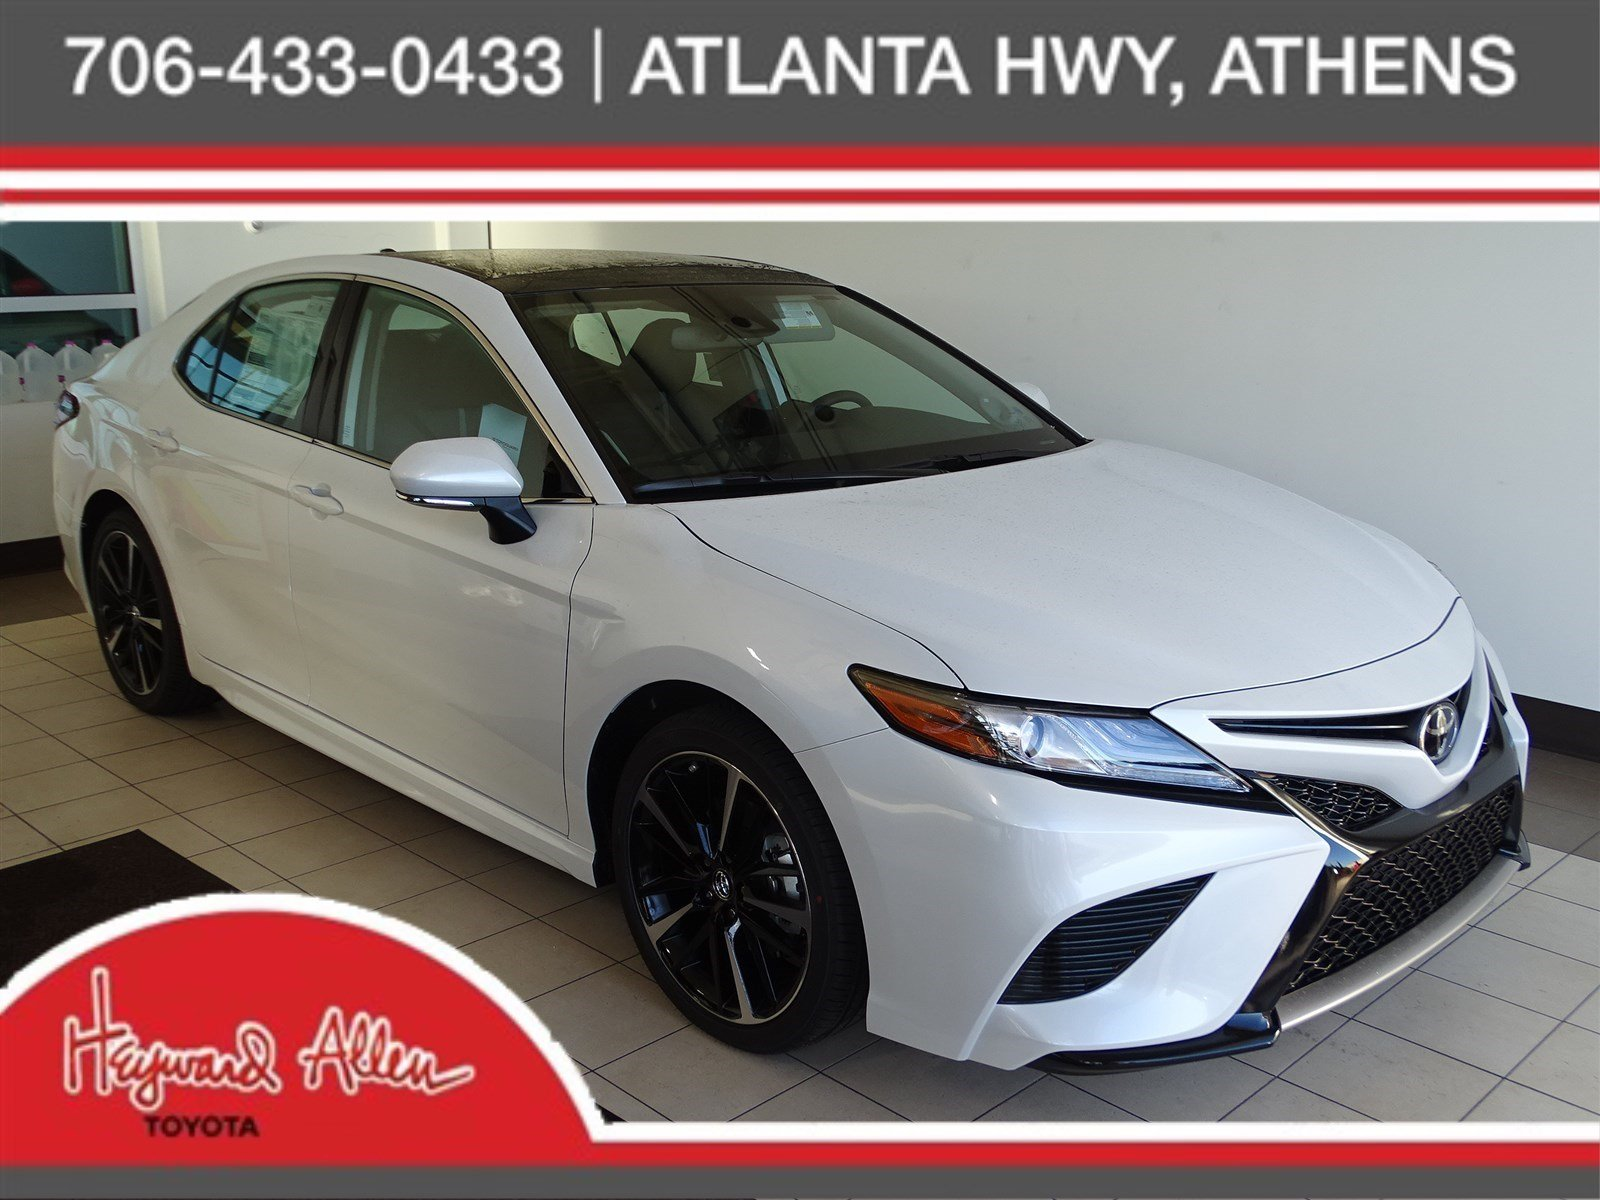 New 2019 Toyota Camry XSE 4dr Car in Athens KU